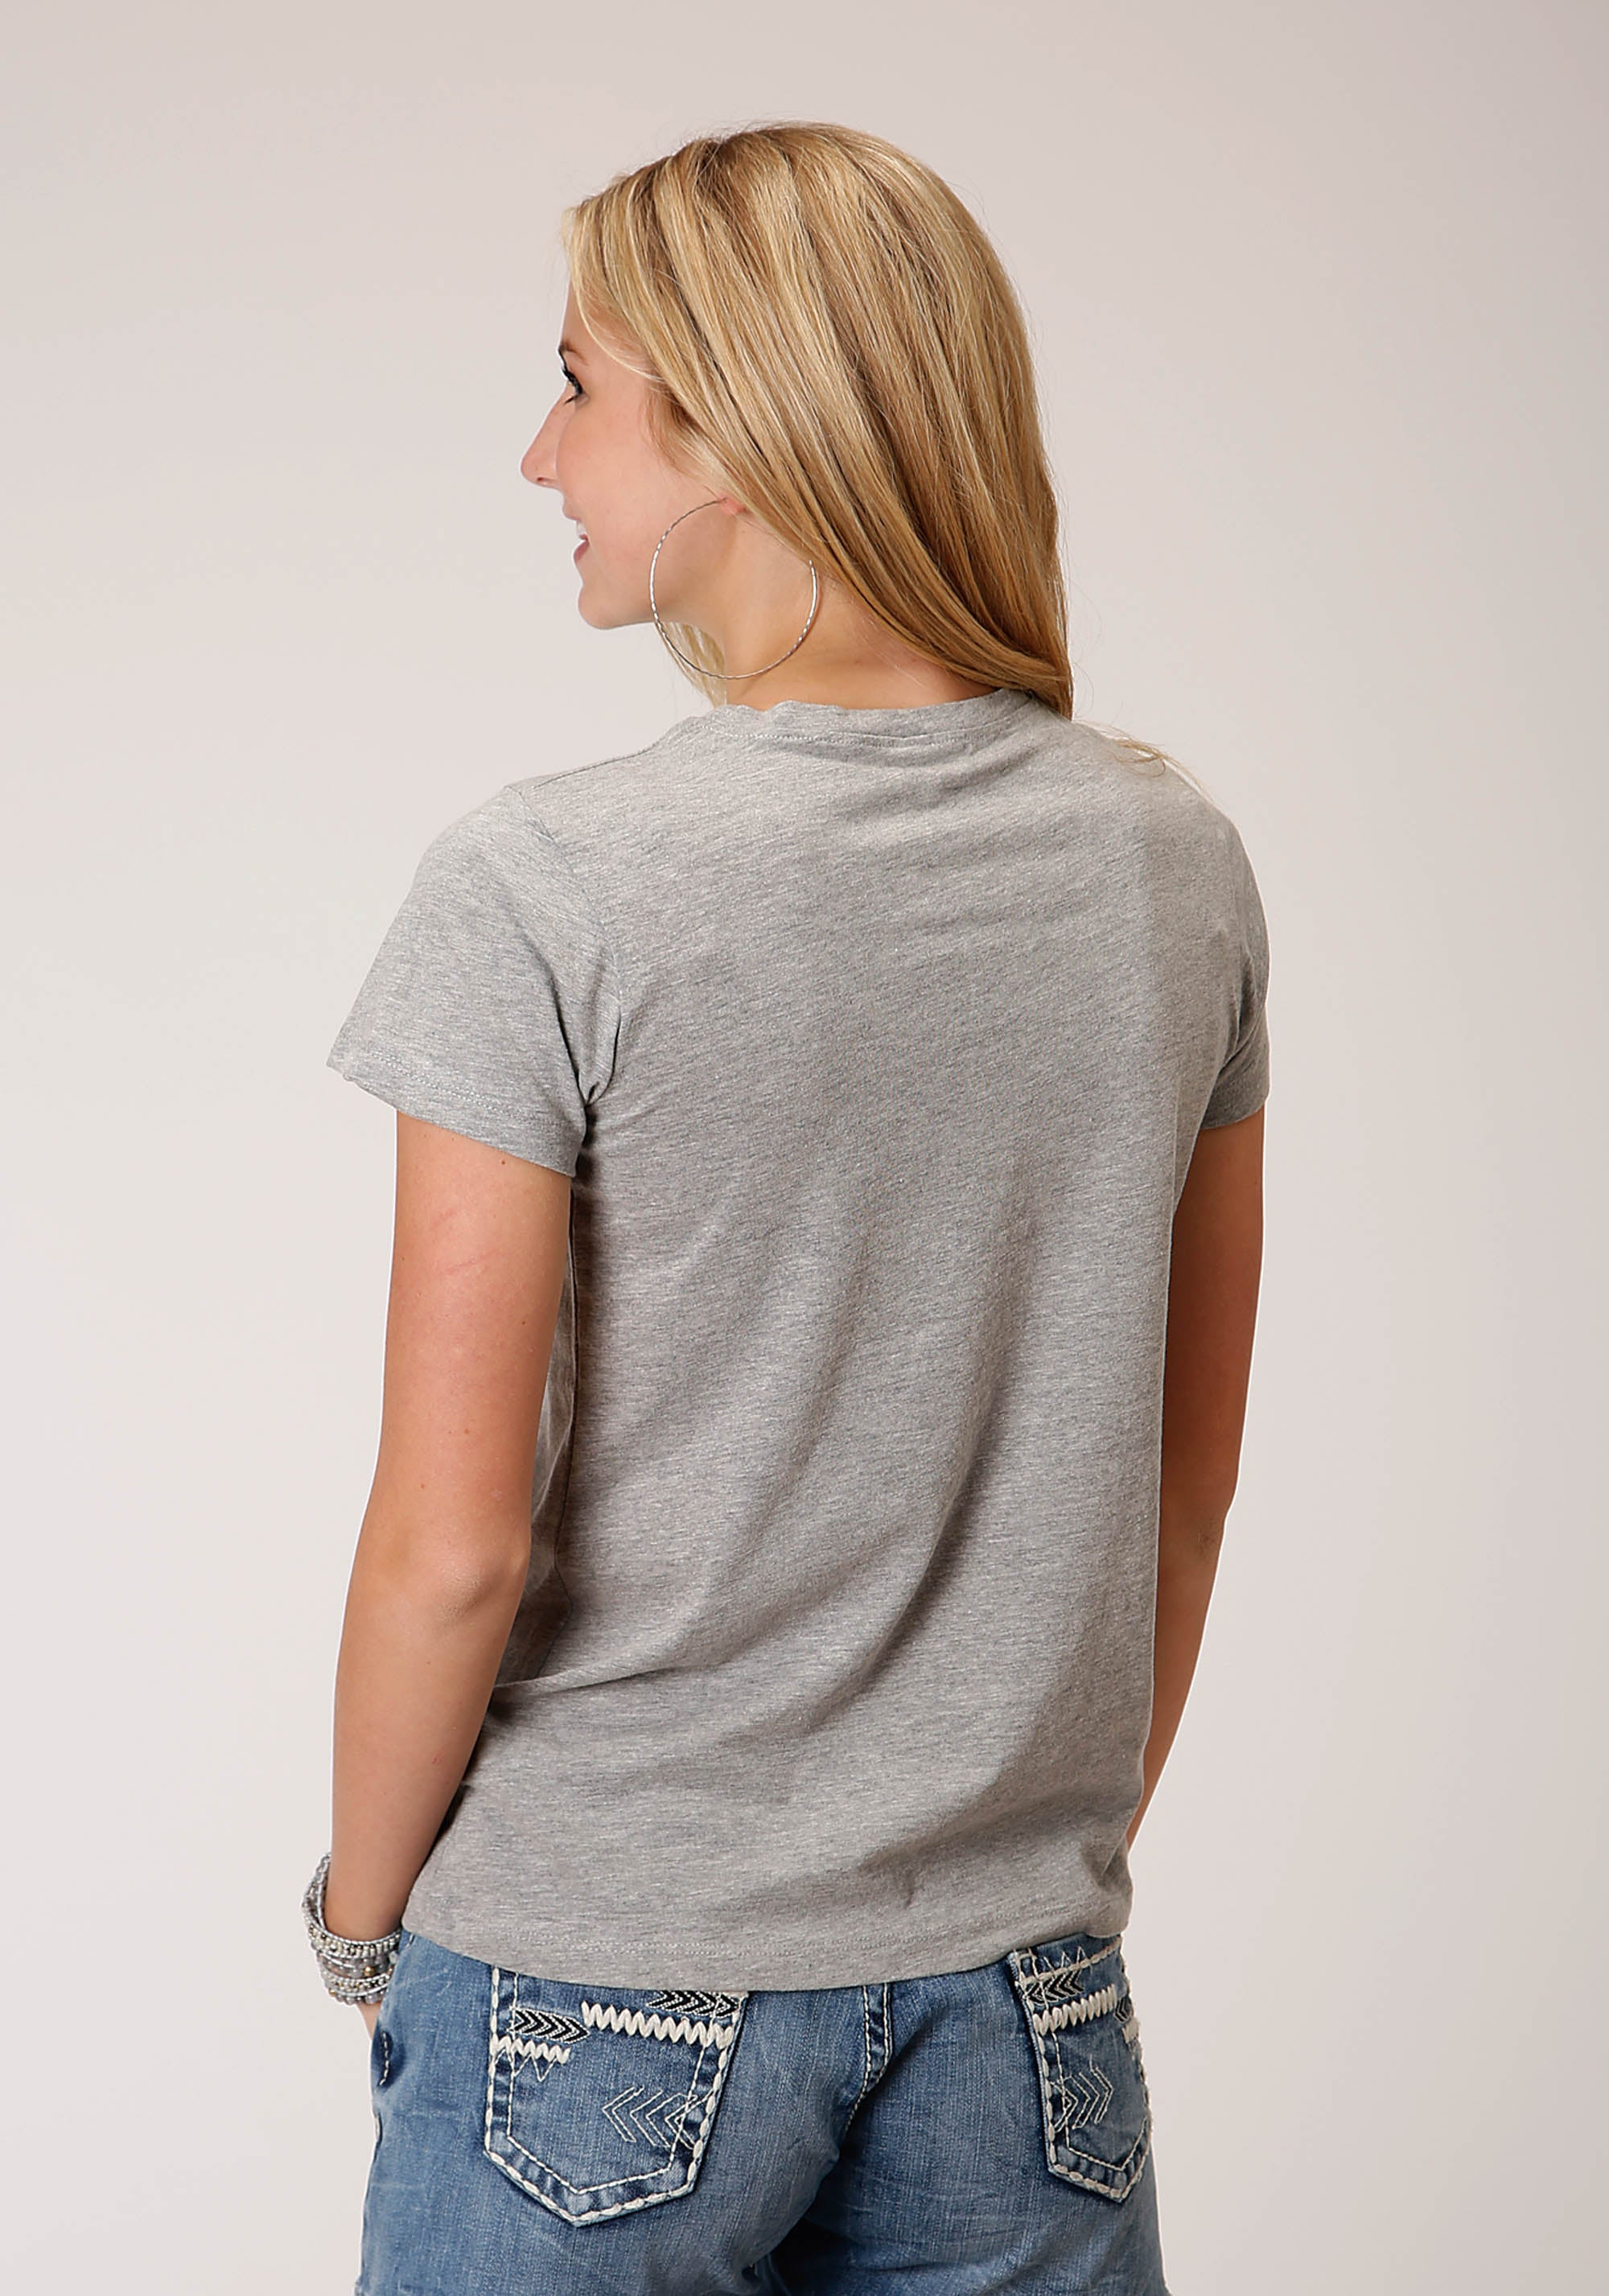 FIVE STAR WOMENS GREY 00838 HEATHER GREY P/R JERSEY KNIT TOP SEASON 2 GROUP 2